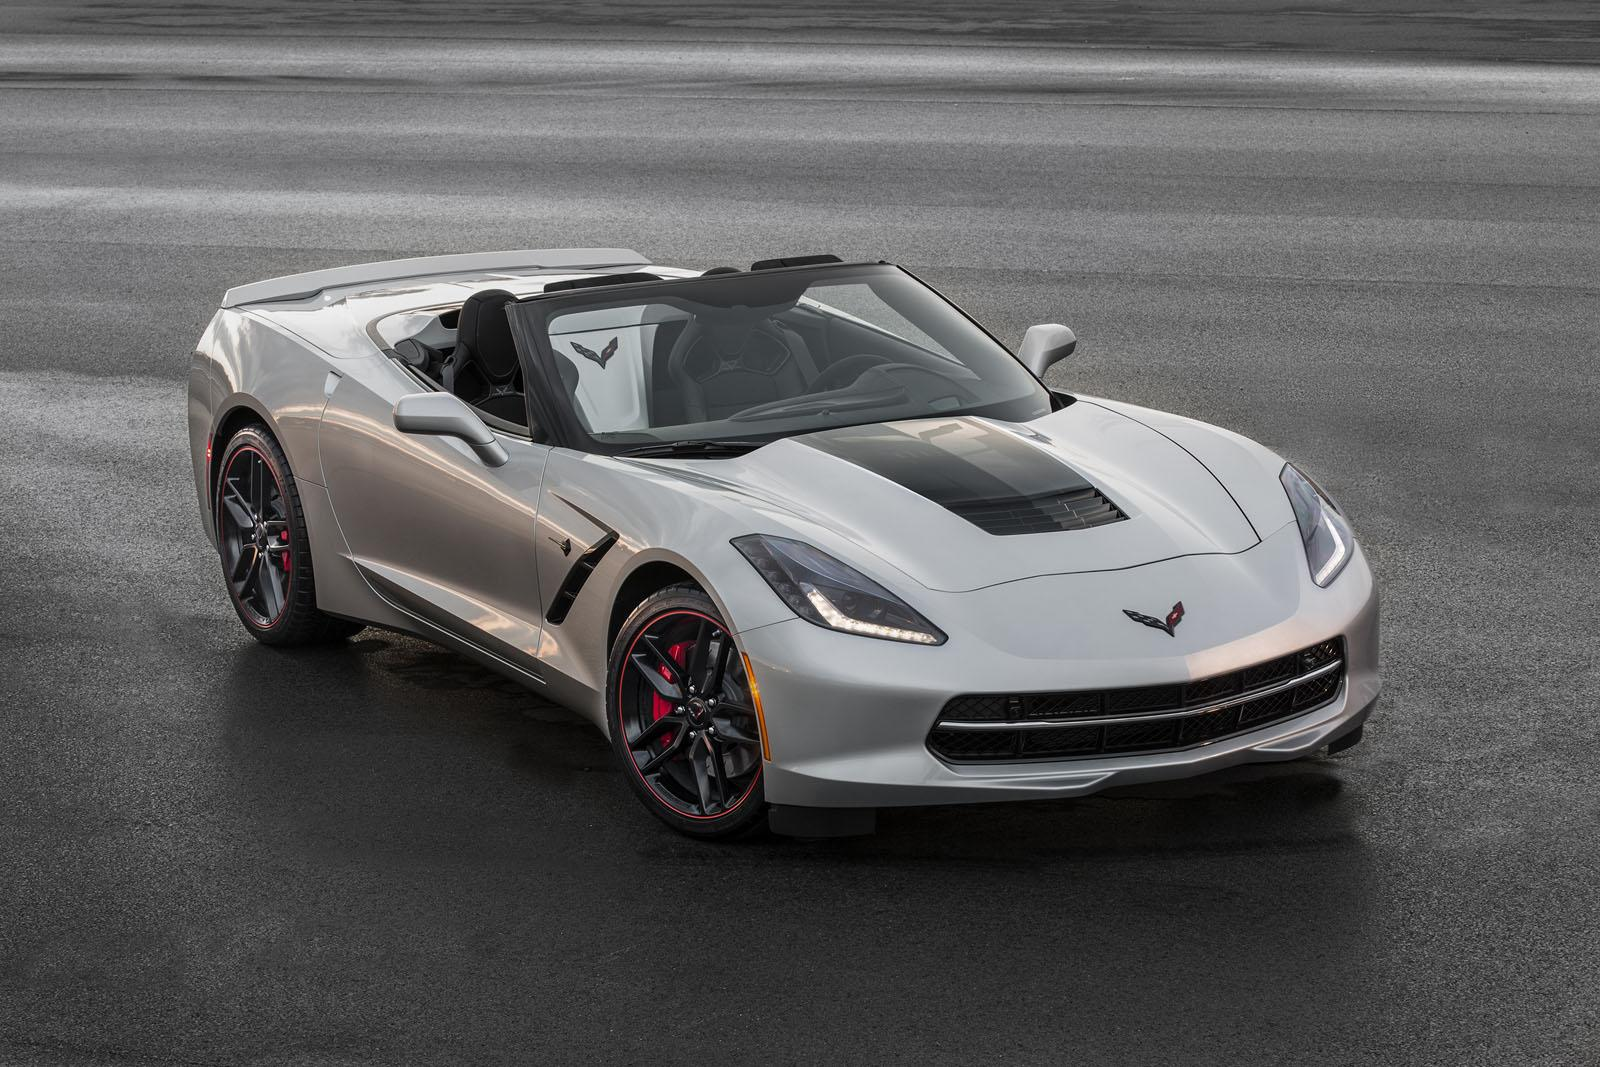 2016 Chevrolet Corvette Stingray Supercar